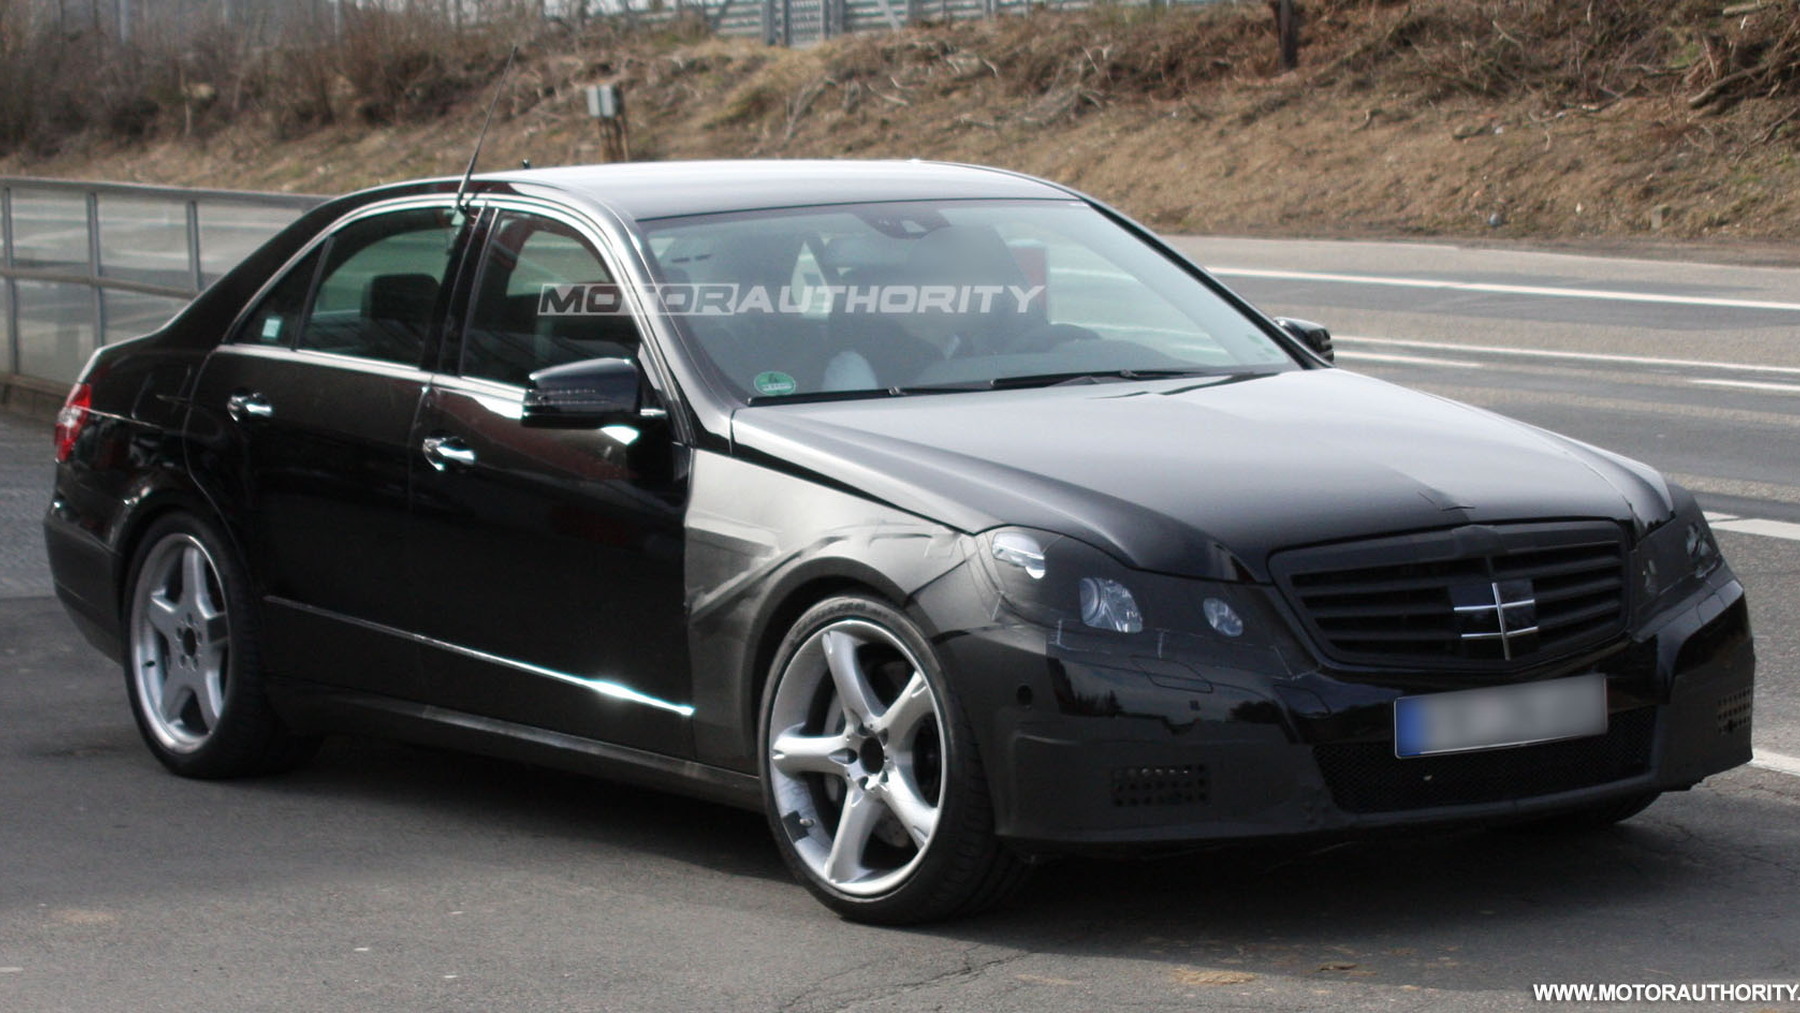 2010 mercedes benz e63 amg spy shots march 003